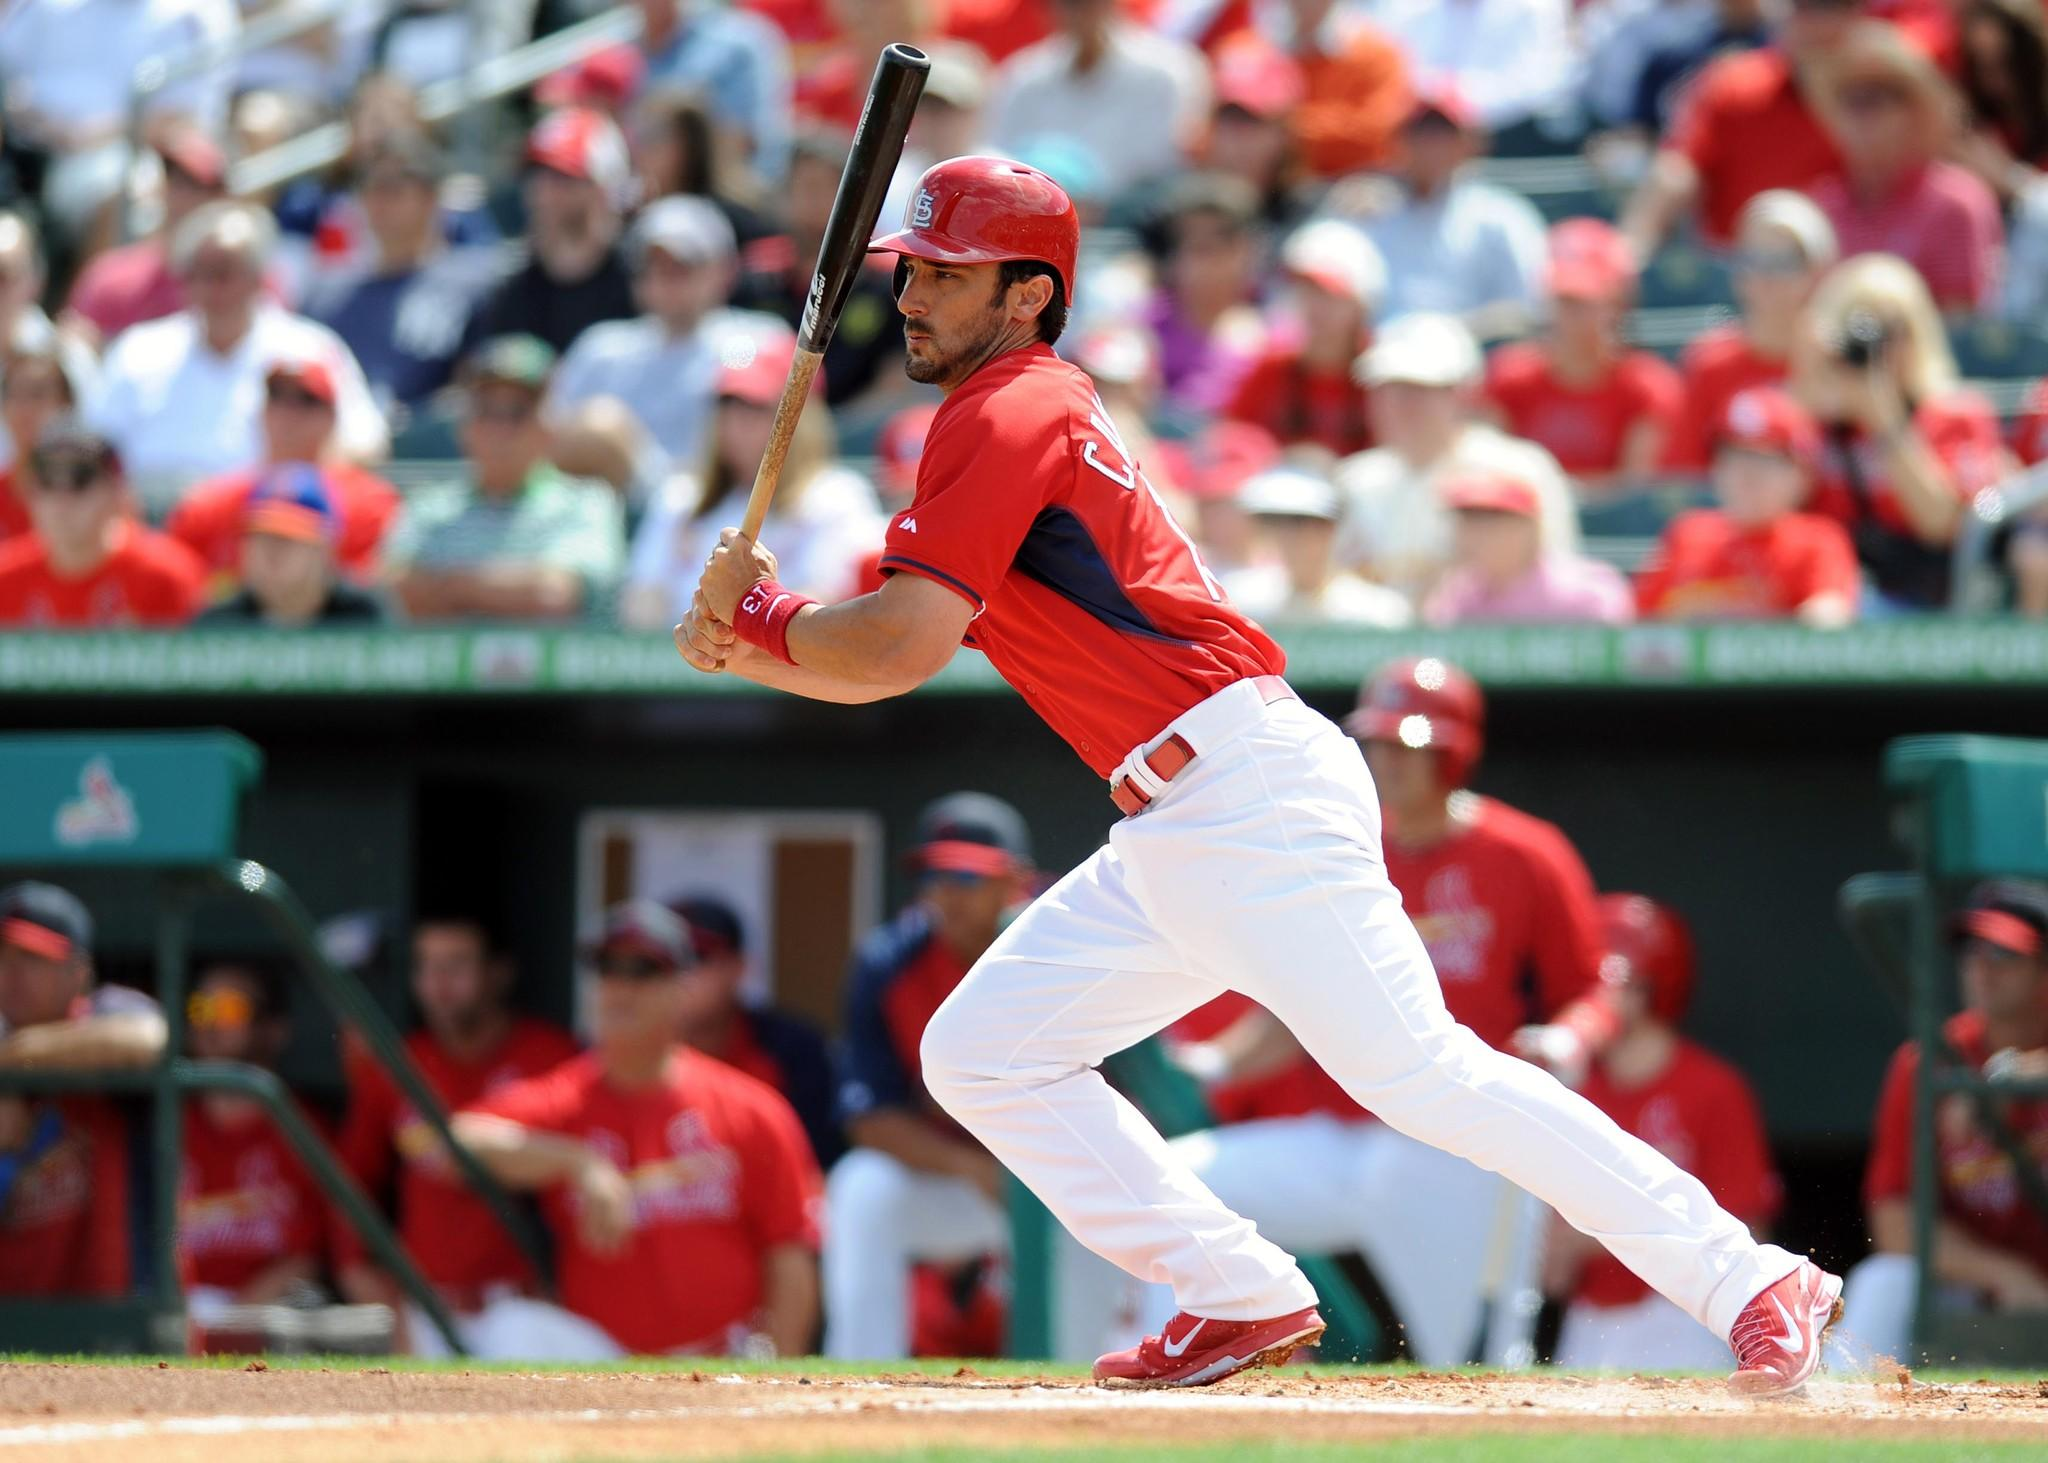 St. Louis Cardinals third baseman Matt Carpenter signed a six-year extension.